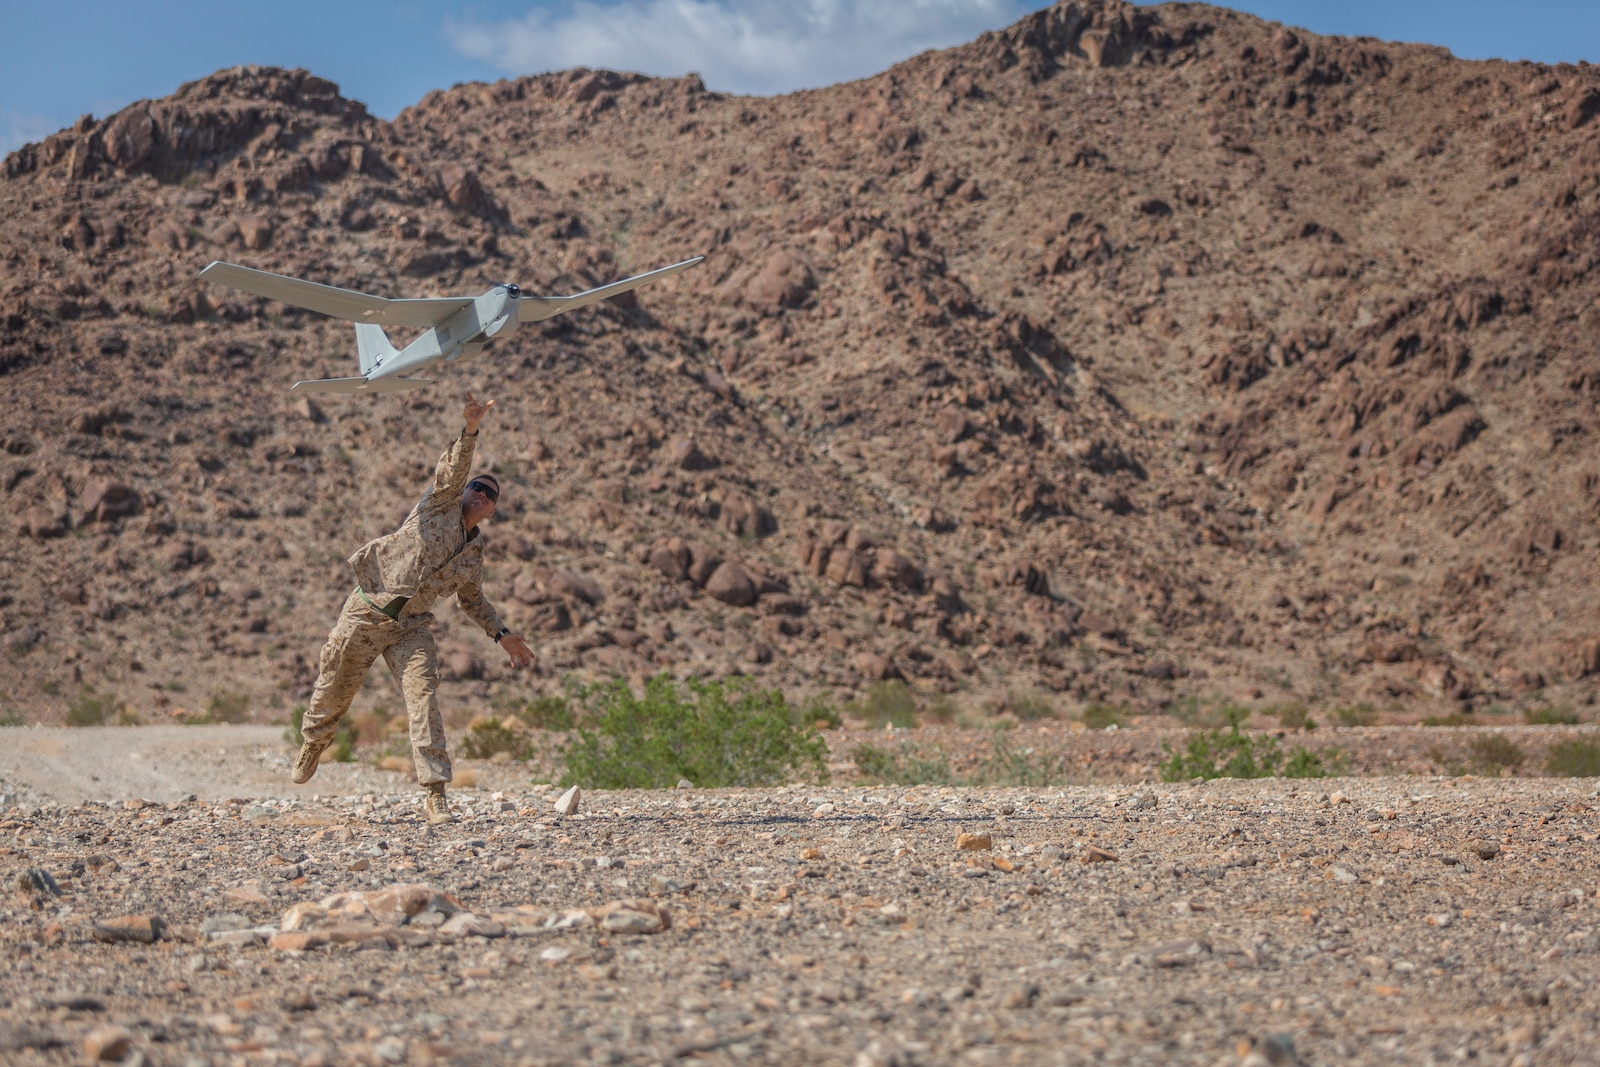 U.S. Marine Corps Cpl. Bruce Stombaugh, an intelligence specialist with 1st Battalion, 3d Marines, launches a RQ-20 puma system as part of Service Level Training Exercise 1-22 at Marine Corps Air Ground Combat Center Twentynine Palms, California, Sept. 24, 2021. New and advanced surveillance systems enhance 3d Marines ability to command and control its forces in an expeditionary and contested environment. Stombaugh is a native of Indianapolis, Indiana. (U.S. Marine Corps photo by Cpl. Alexis Moradian)